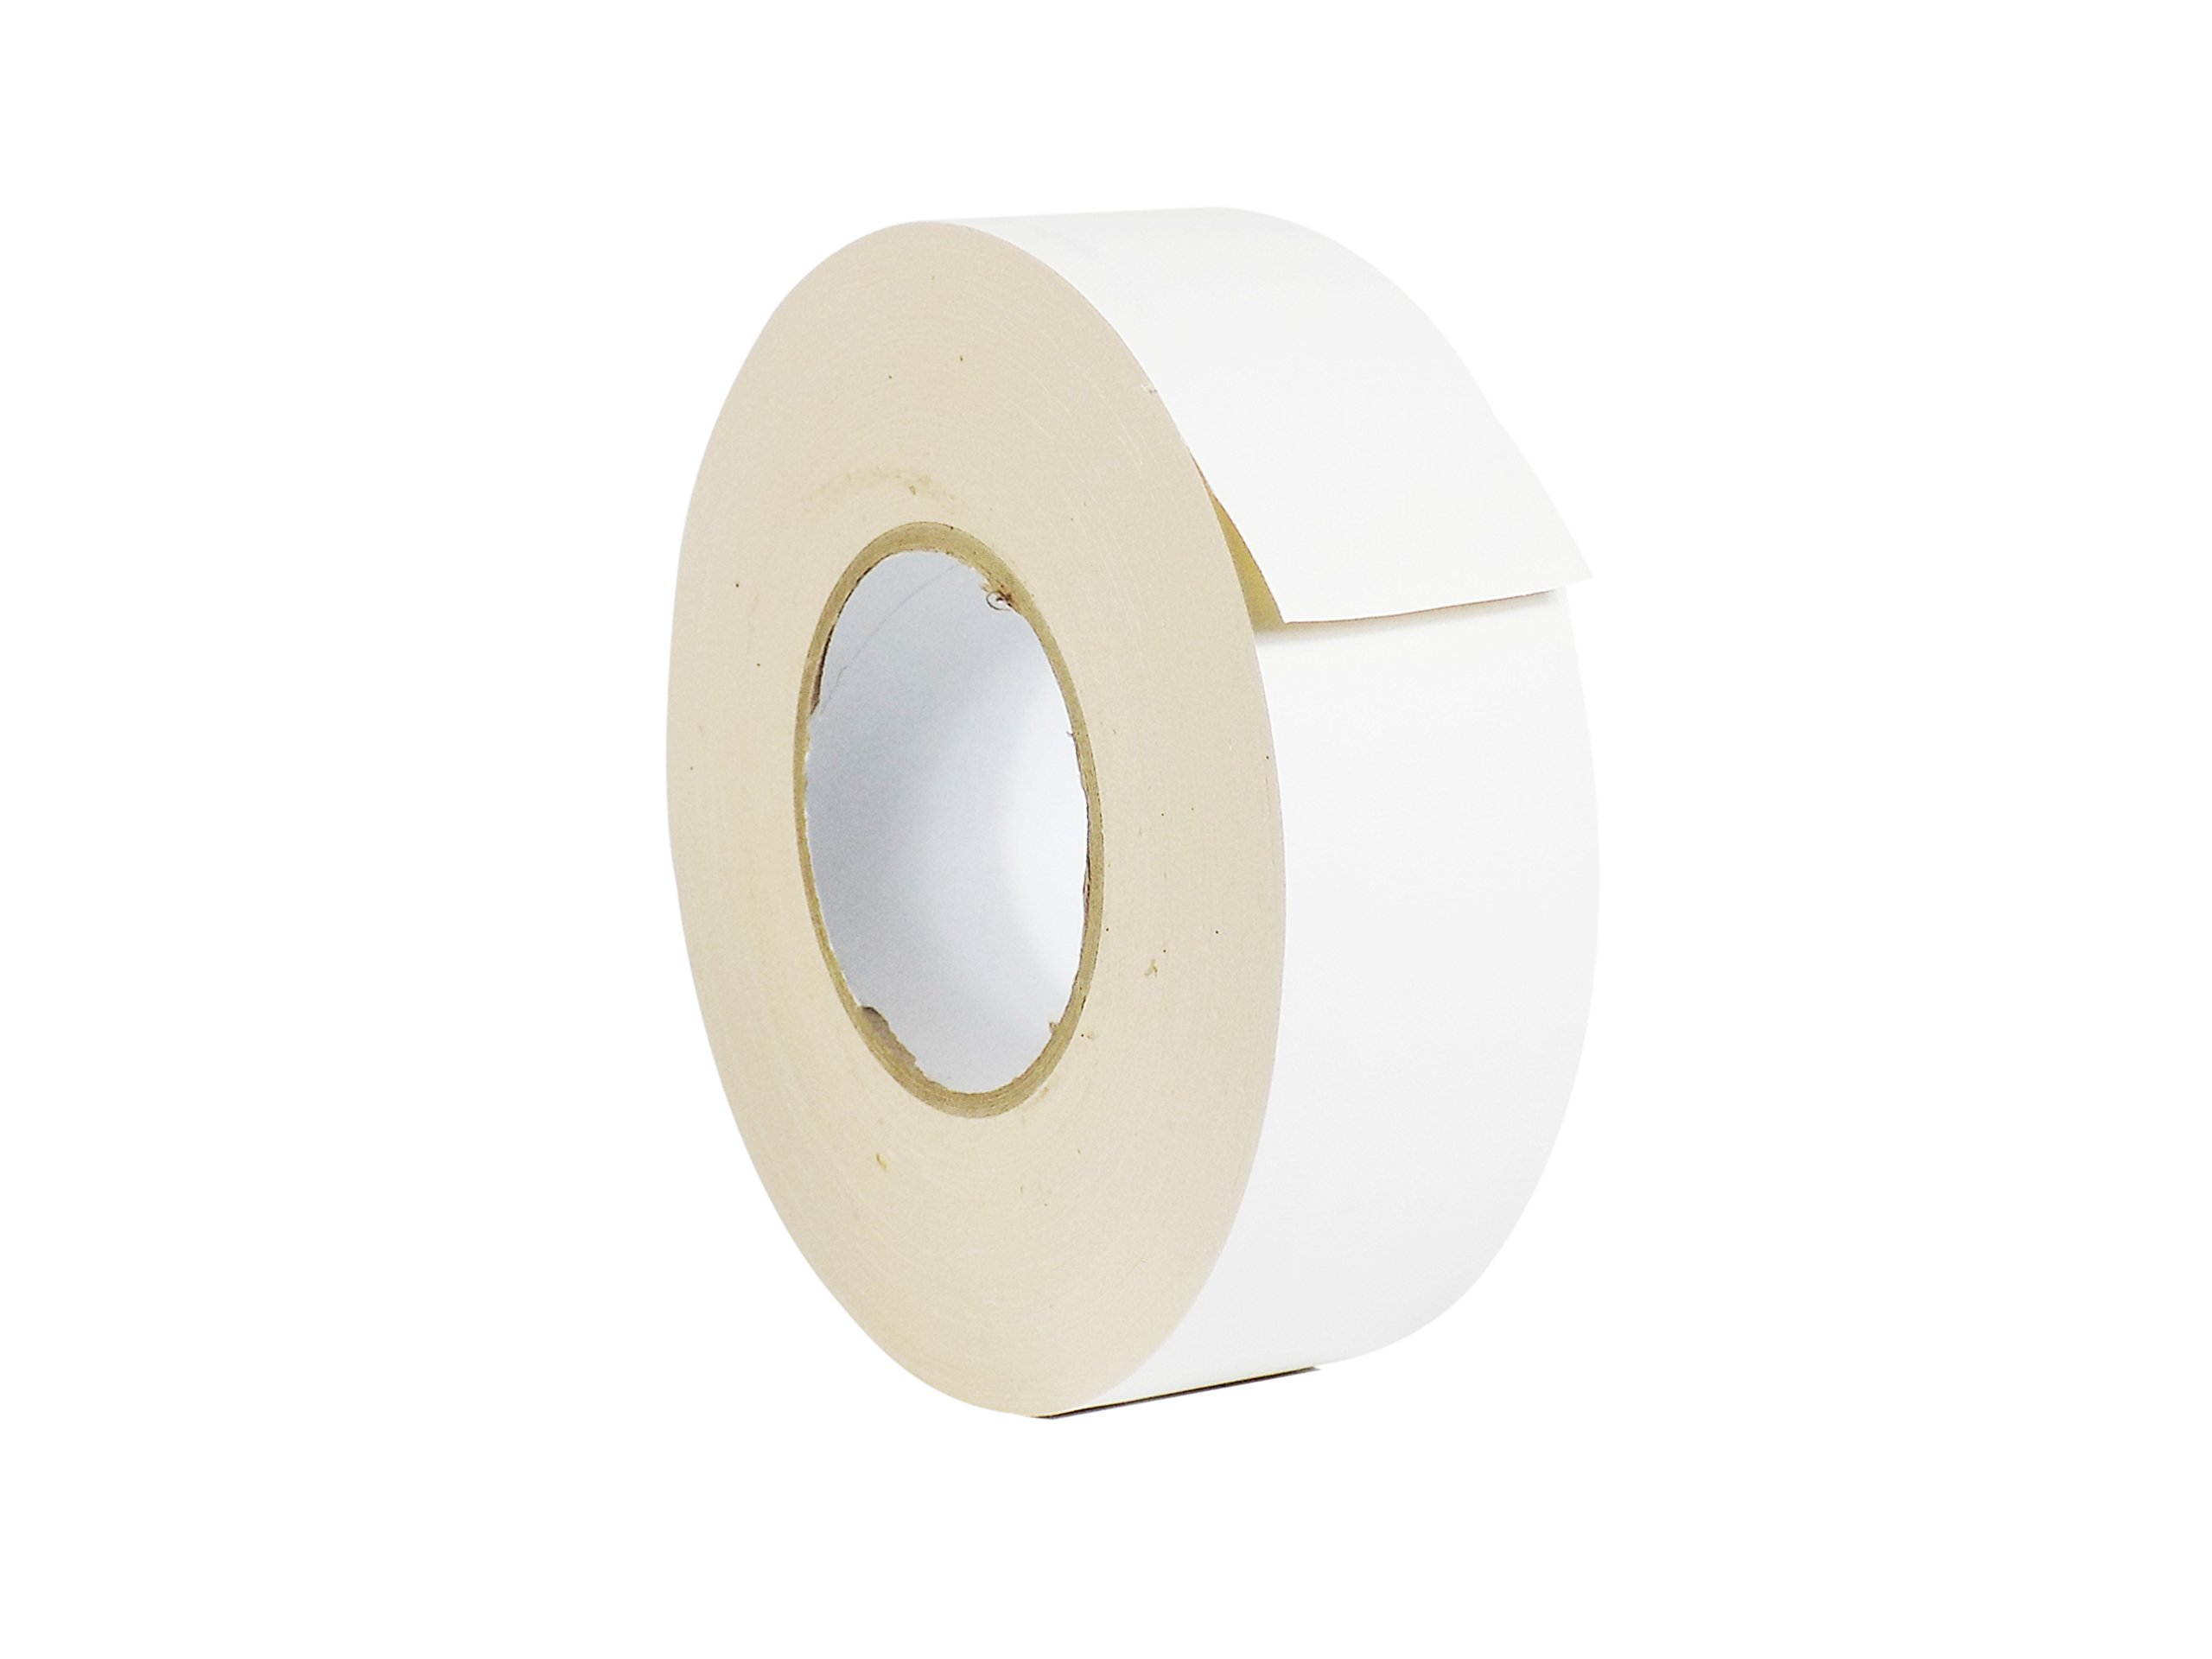 WOD CGT-80 White Gaffer Tape Low Gloss Finish Film, Residue Free, Non Reflective Gaffer, Better than Duct Tape (Available in Multiple Sizes & Colors): 3 in. X 60 Yards (Pack of 16) by WOD Tape (Image #1)